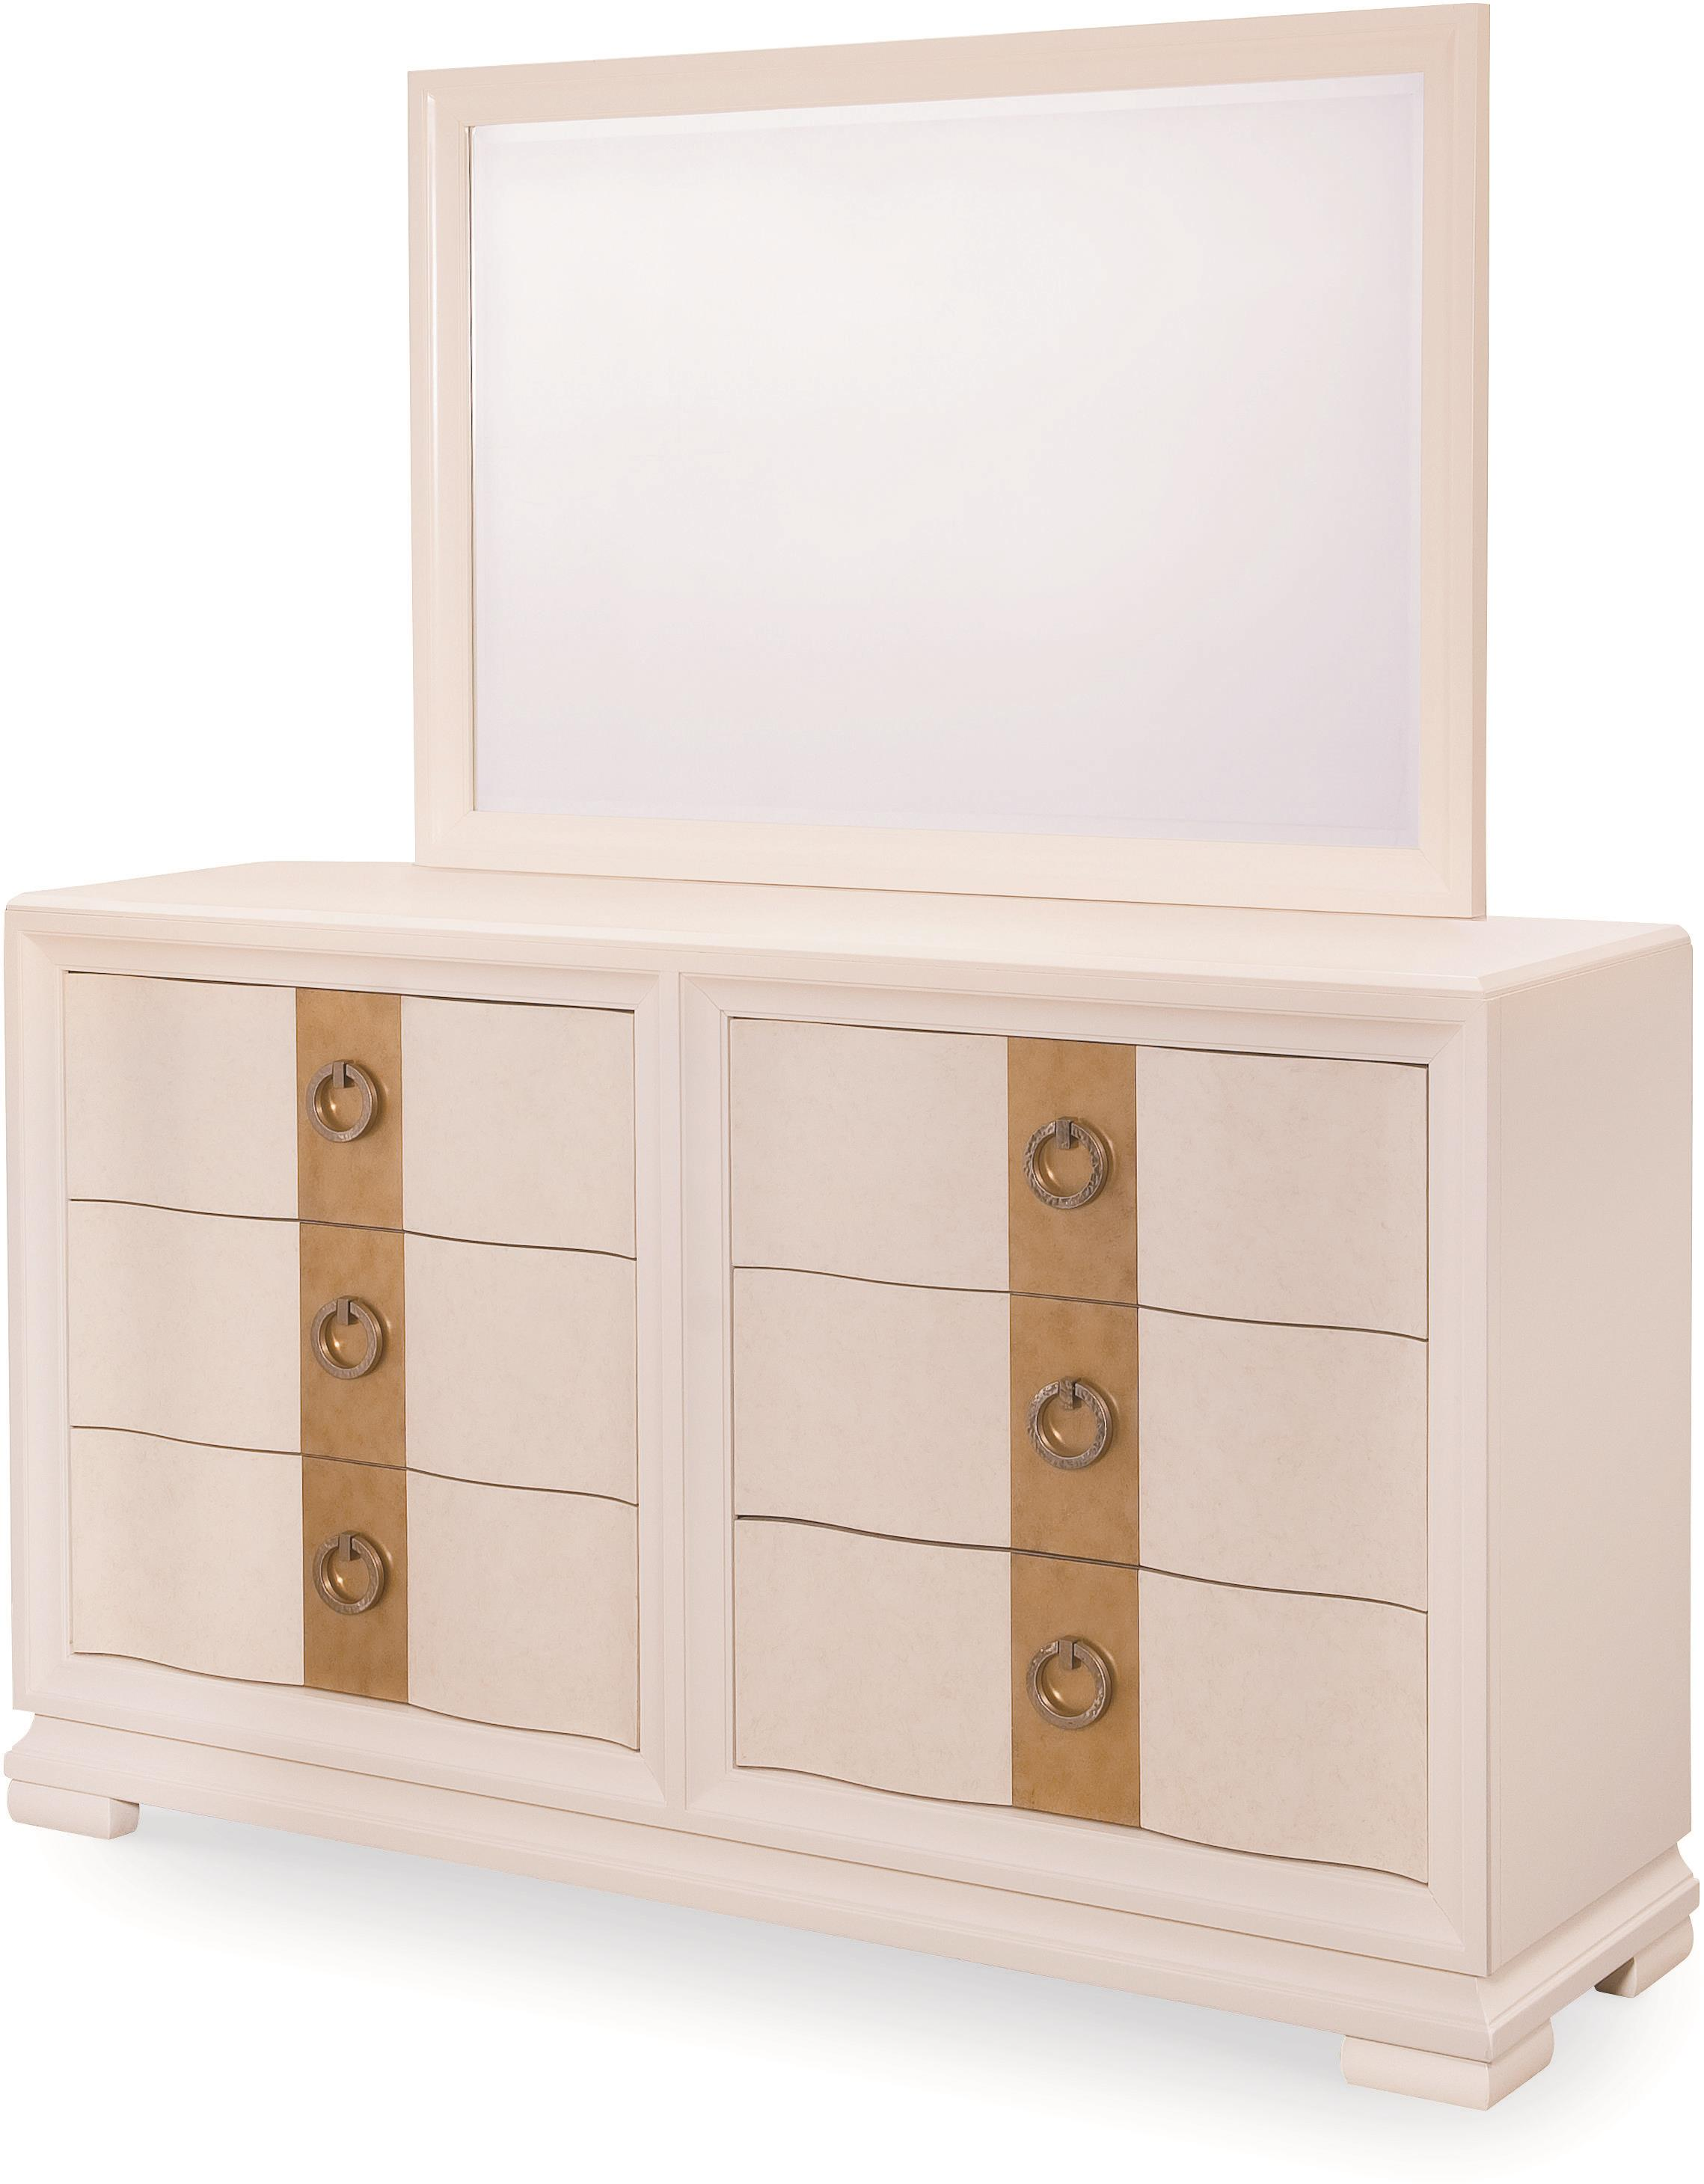 Legacy Classic Tower Suite Dresser and Landscape Mirror - Item Number: 5010-0400+1200